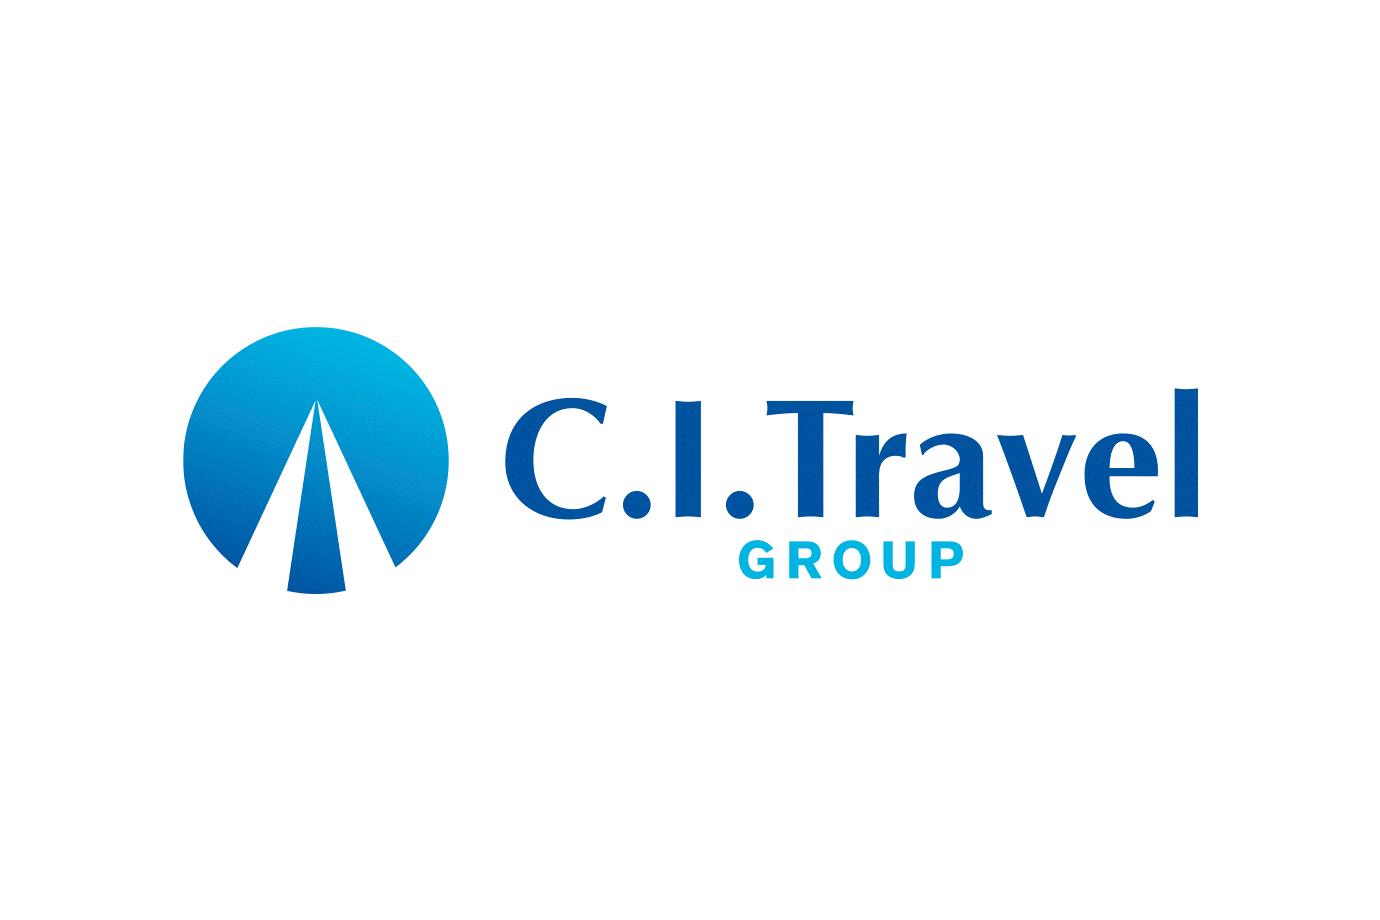 C. I. Travel Group logo